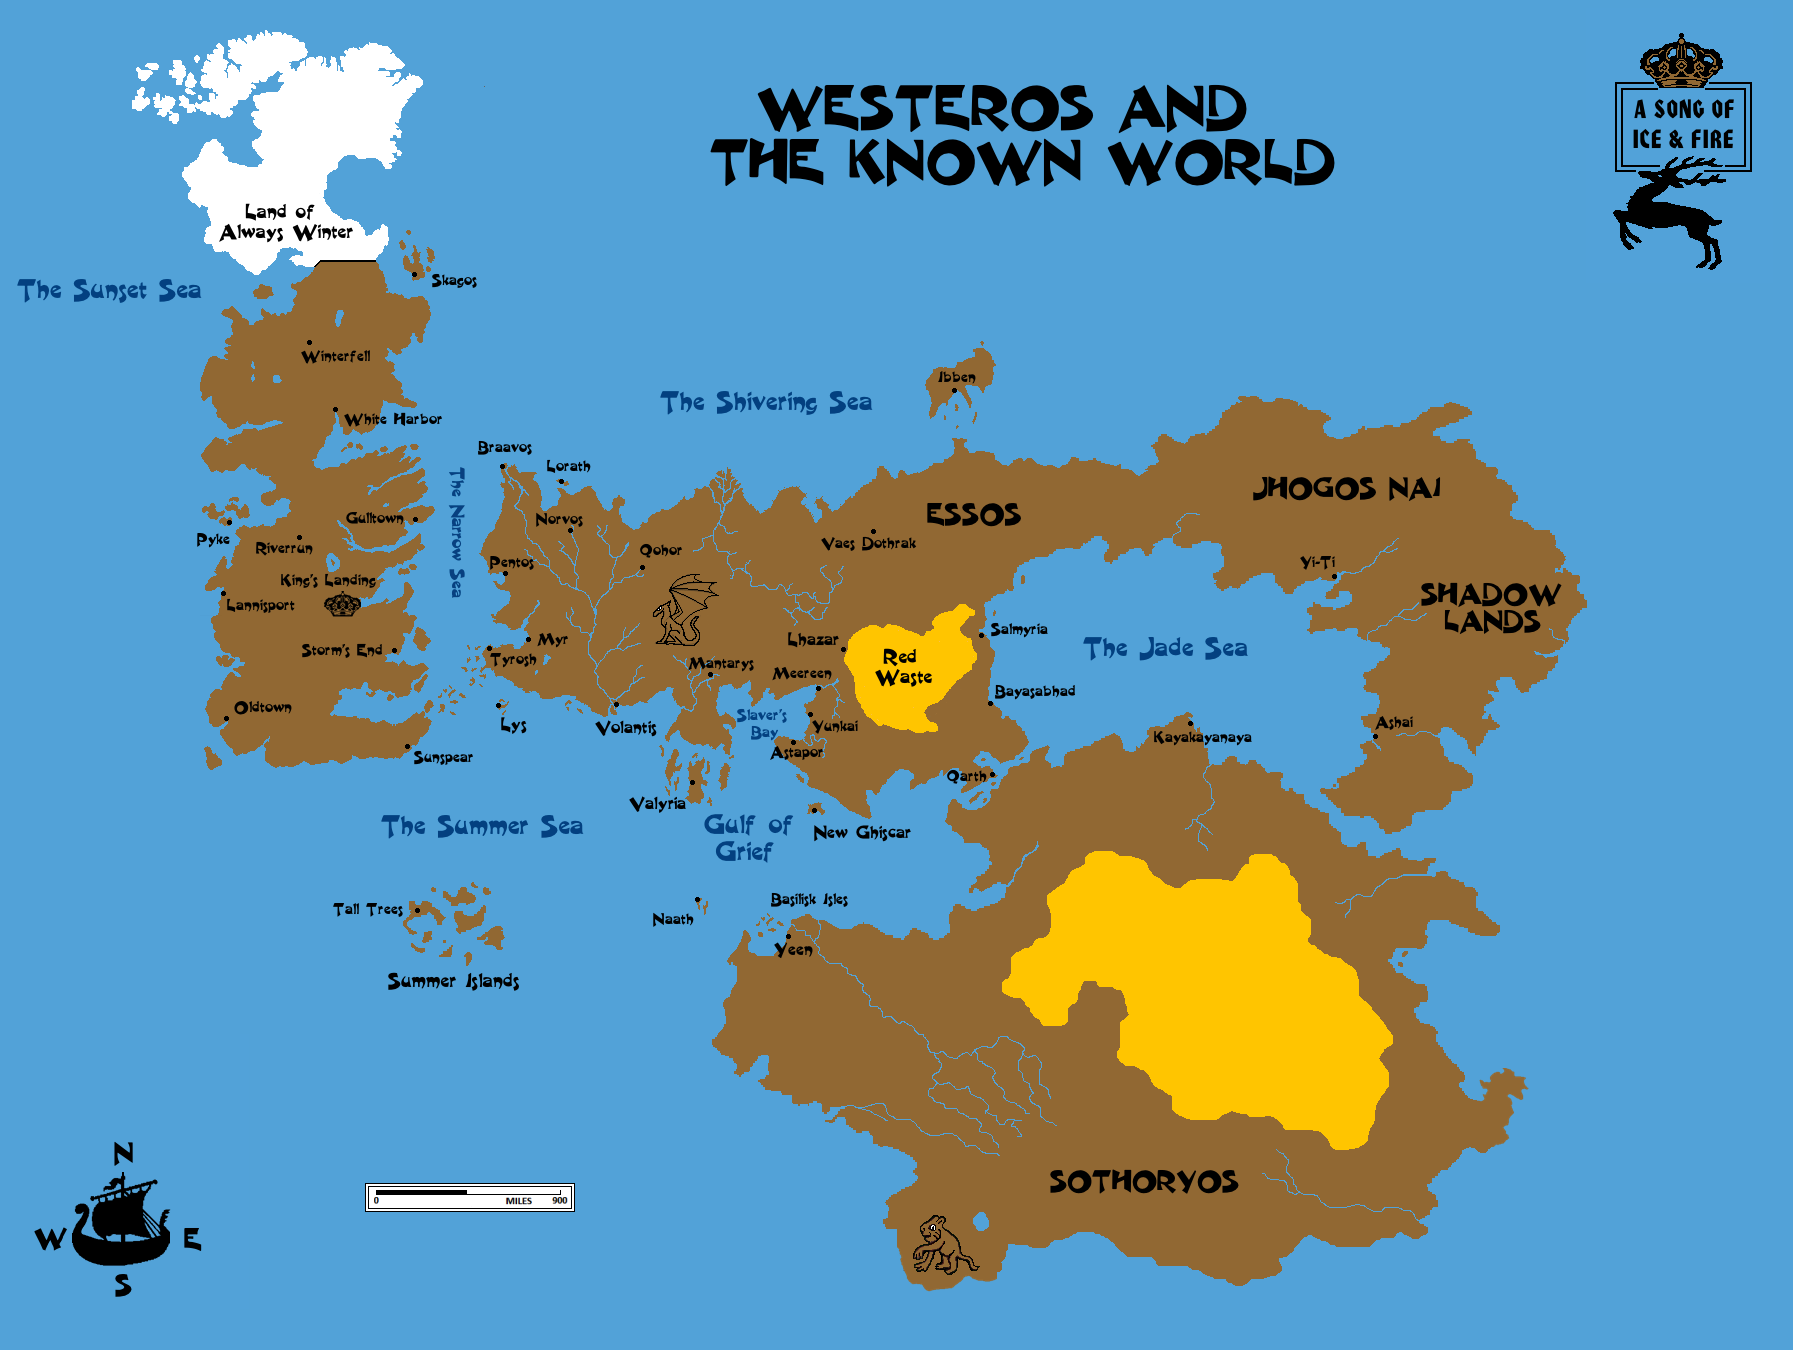 Map Of The World Of Ice And Fire A Song Of Ice And Fire